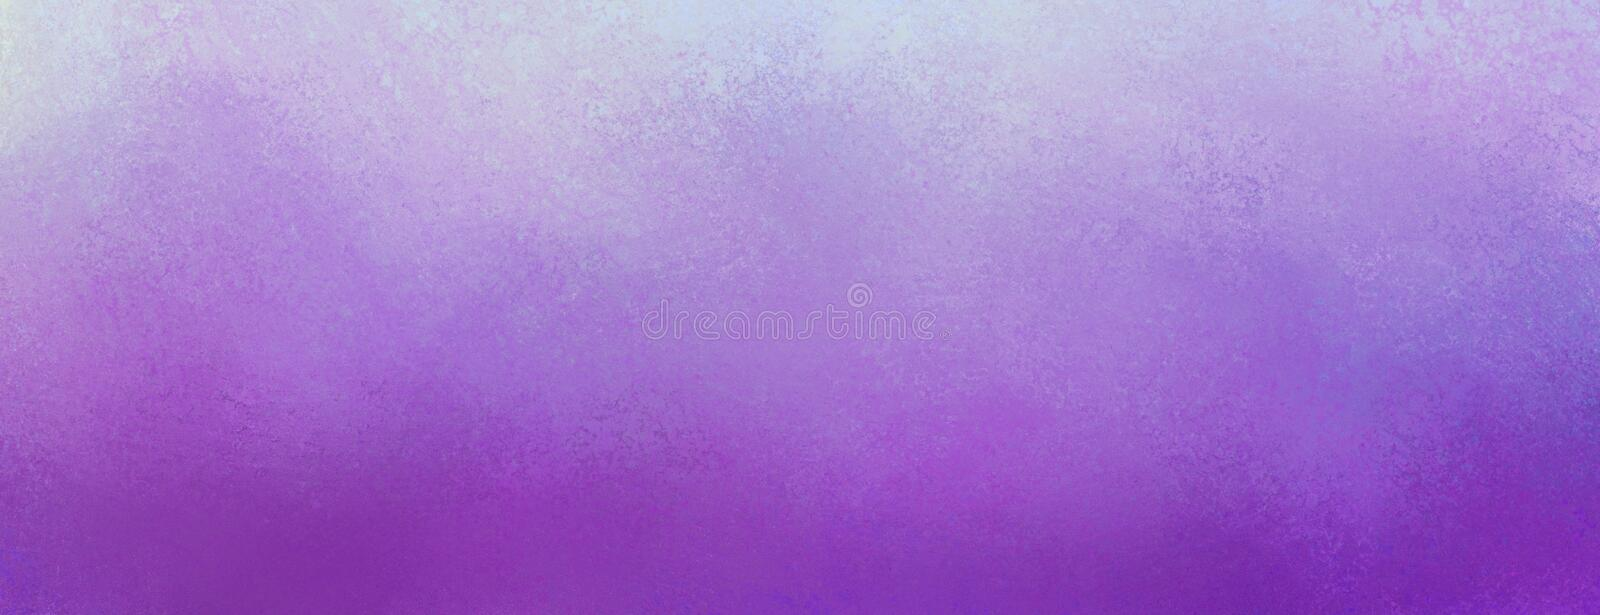 Vintage purple background with distressed light purple texture and pastel border design stock images